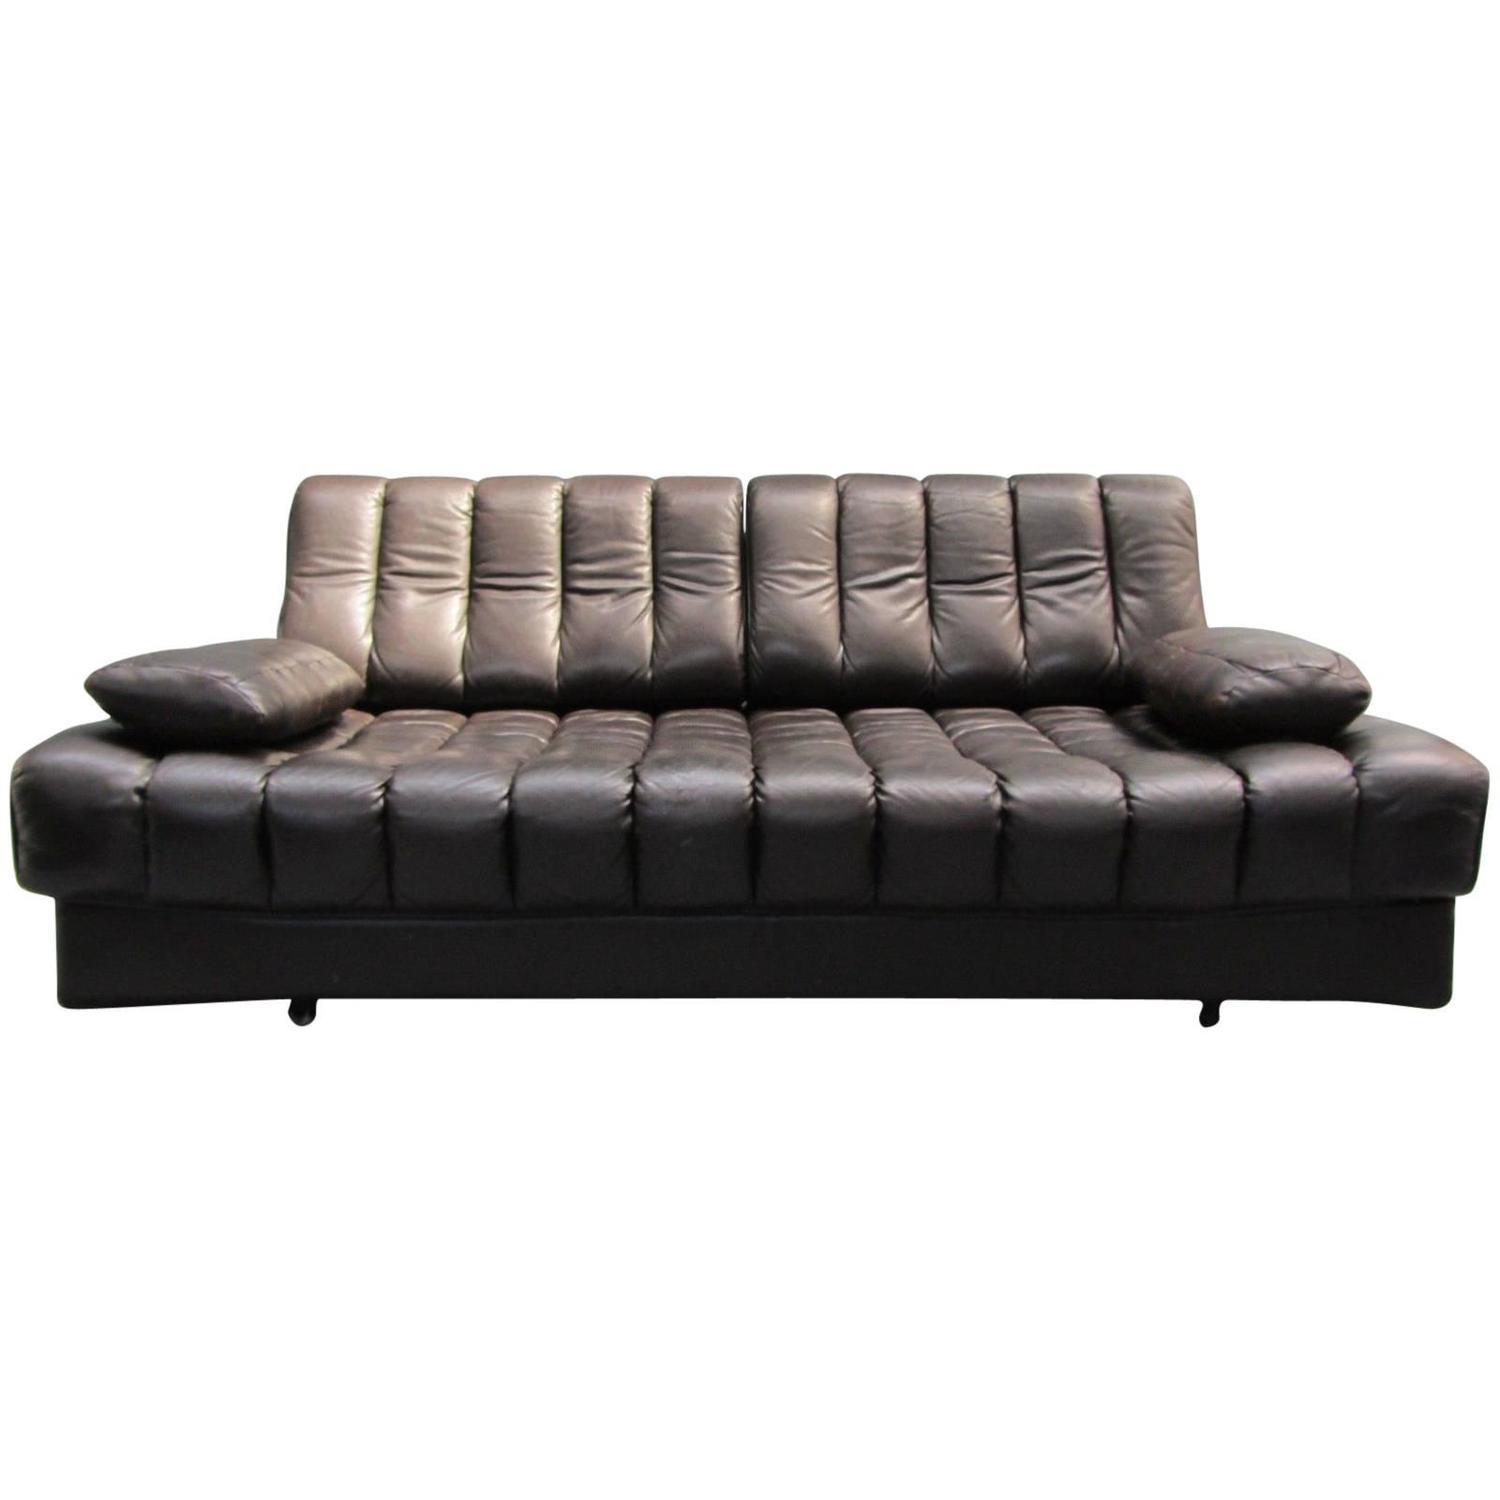 De Sede DS85 Daybed Sofa Couch Loveseat Black Brown Leather 1960